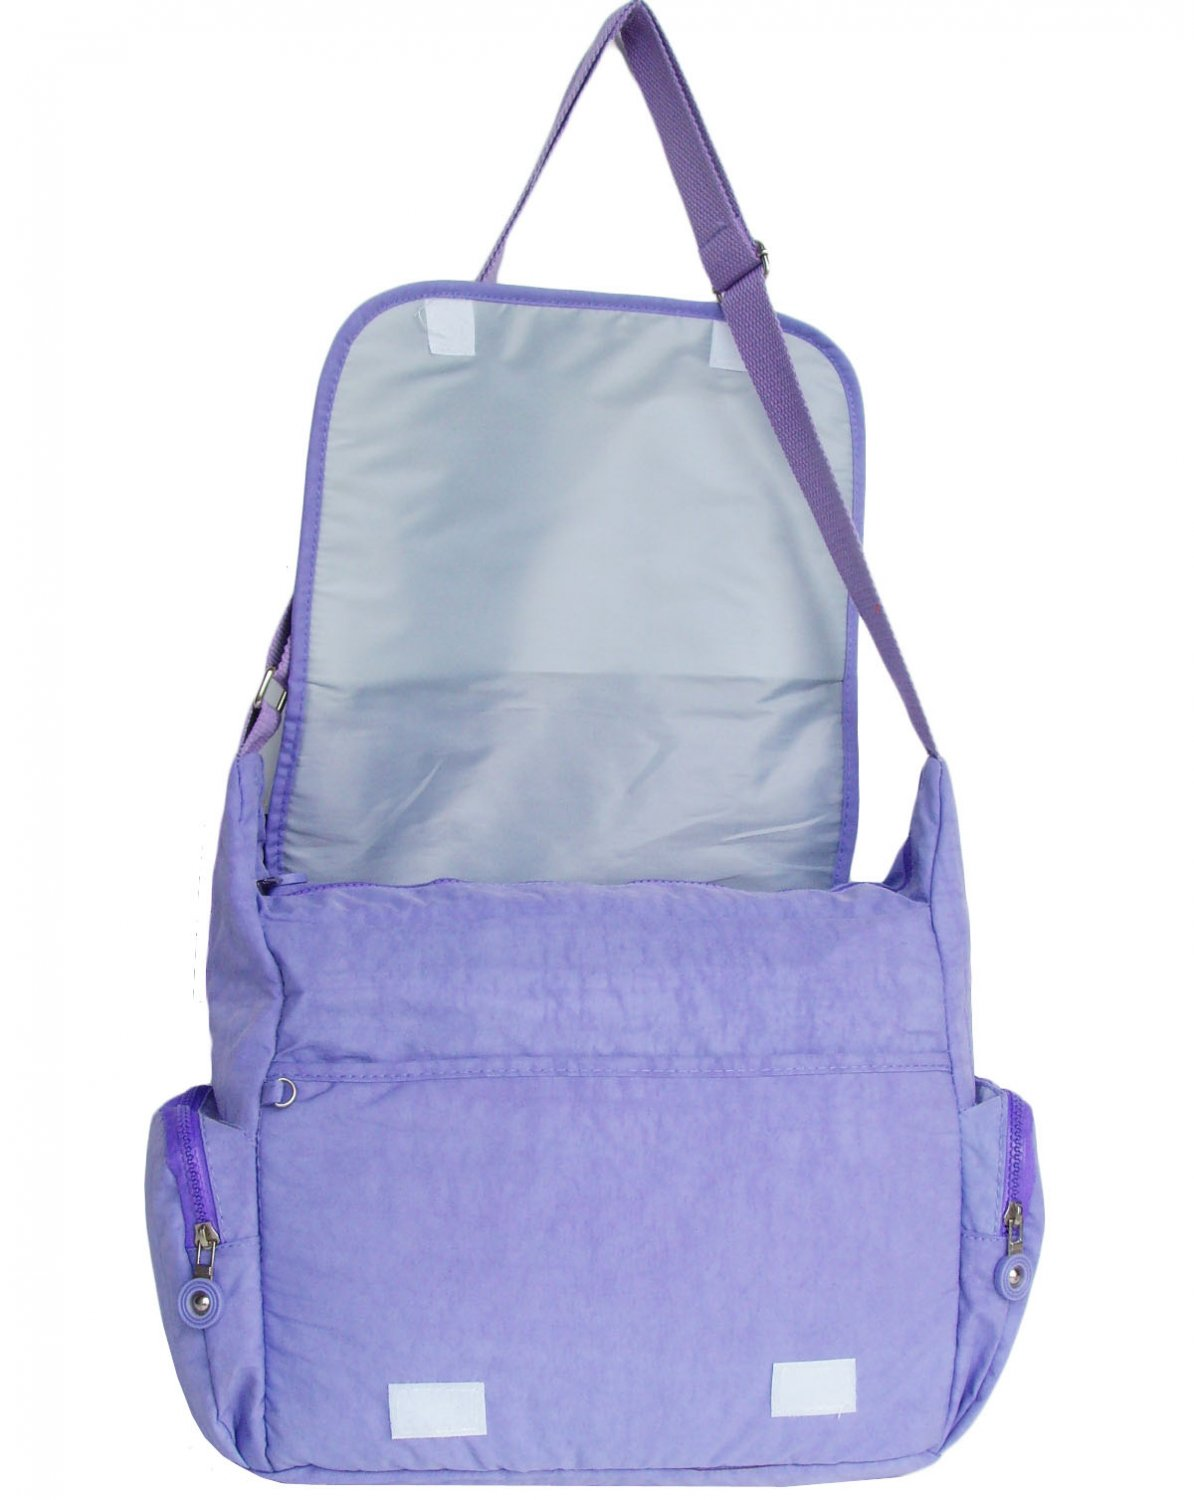 HONG YE Pure Stripe Slouch Bag,sku:hb79purple3